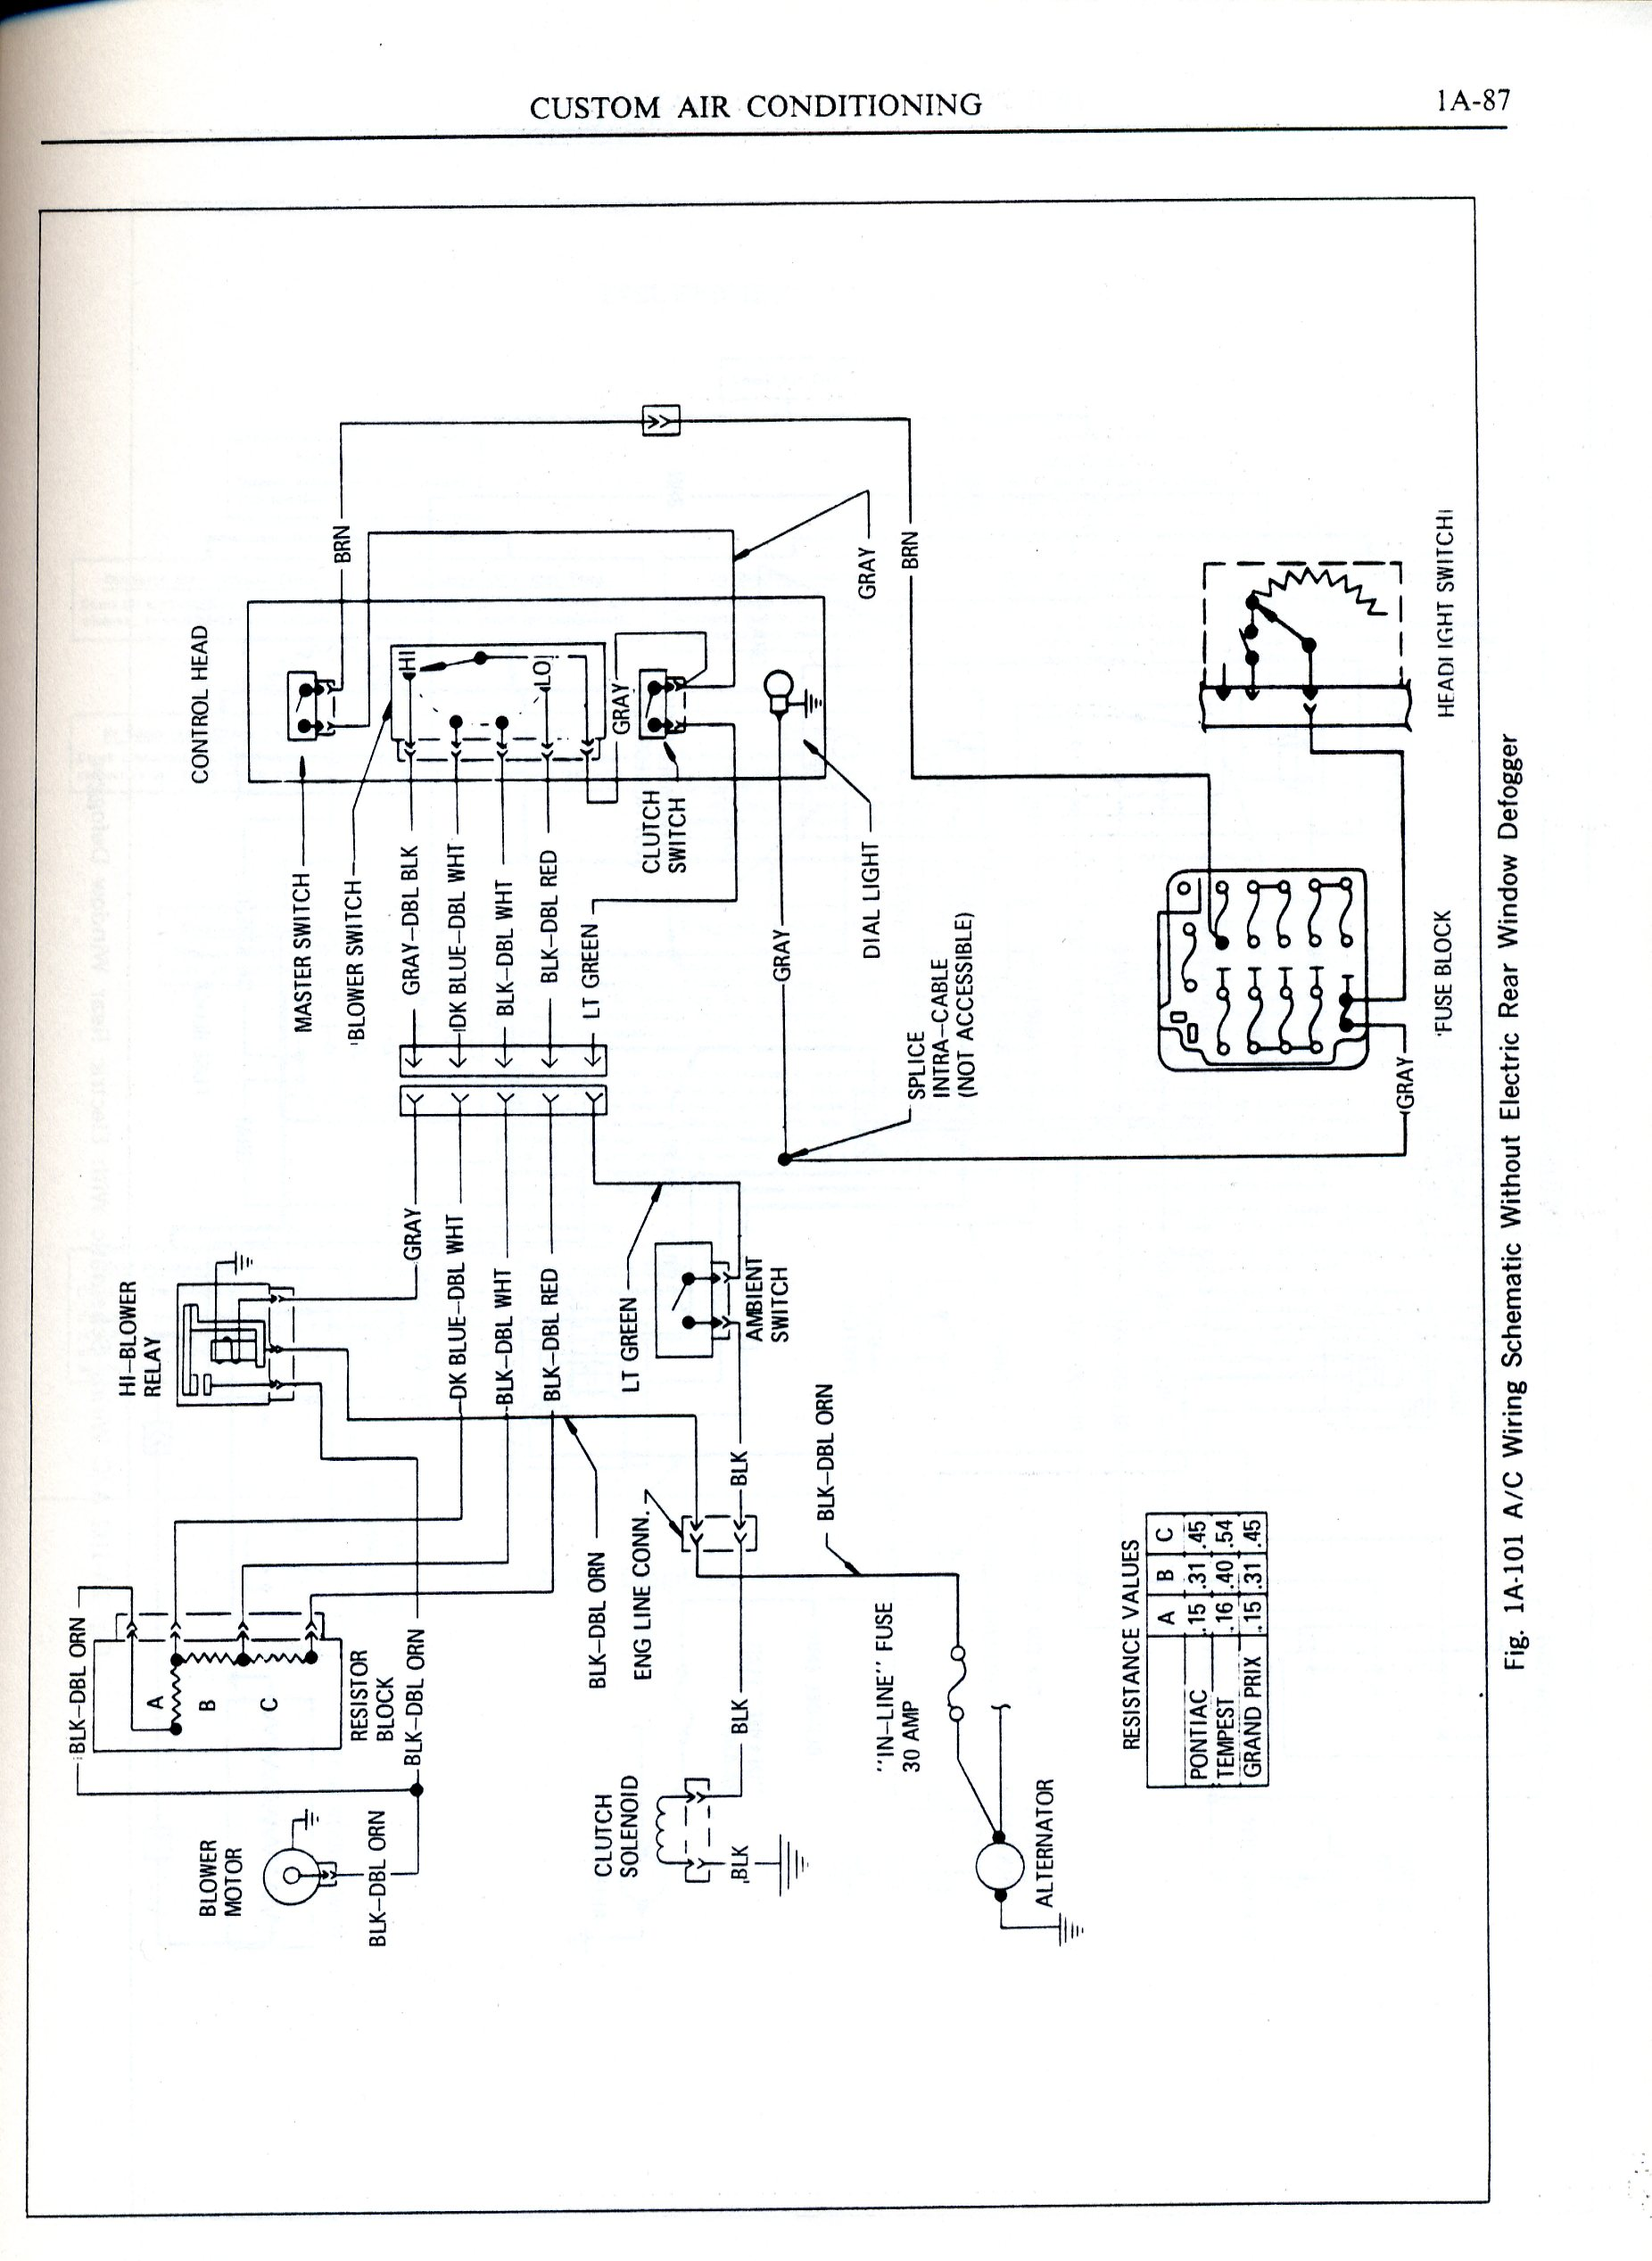 1970 lemans wiring diagram pontiac gto forum click image for larger version 001 jpg views 23893 size 433 8